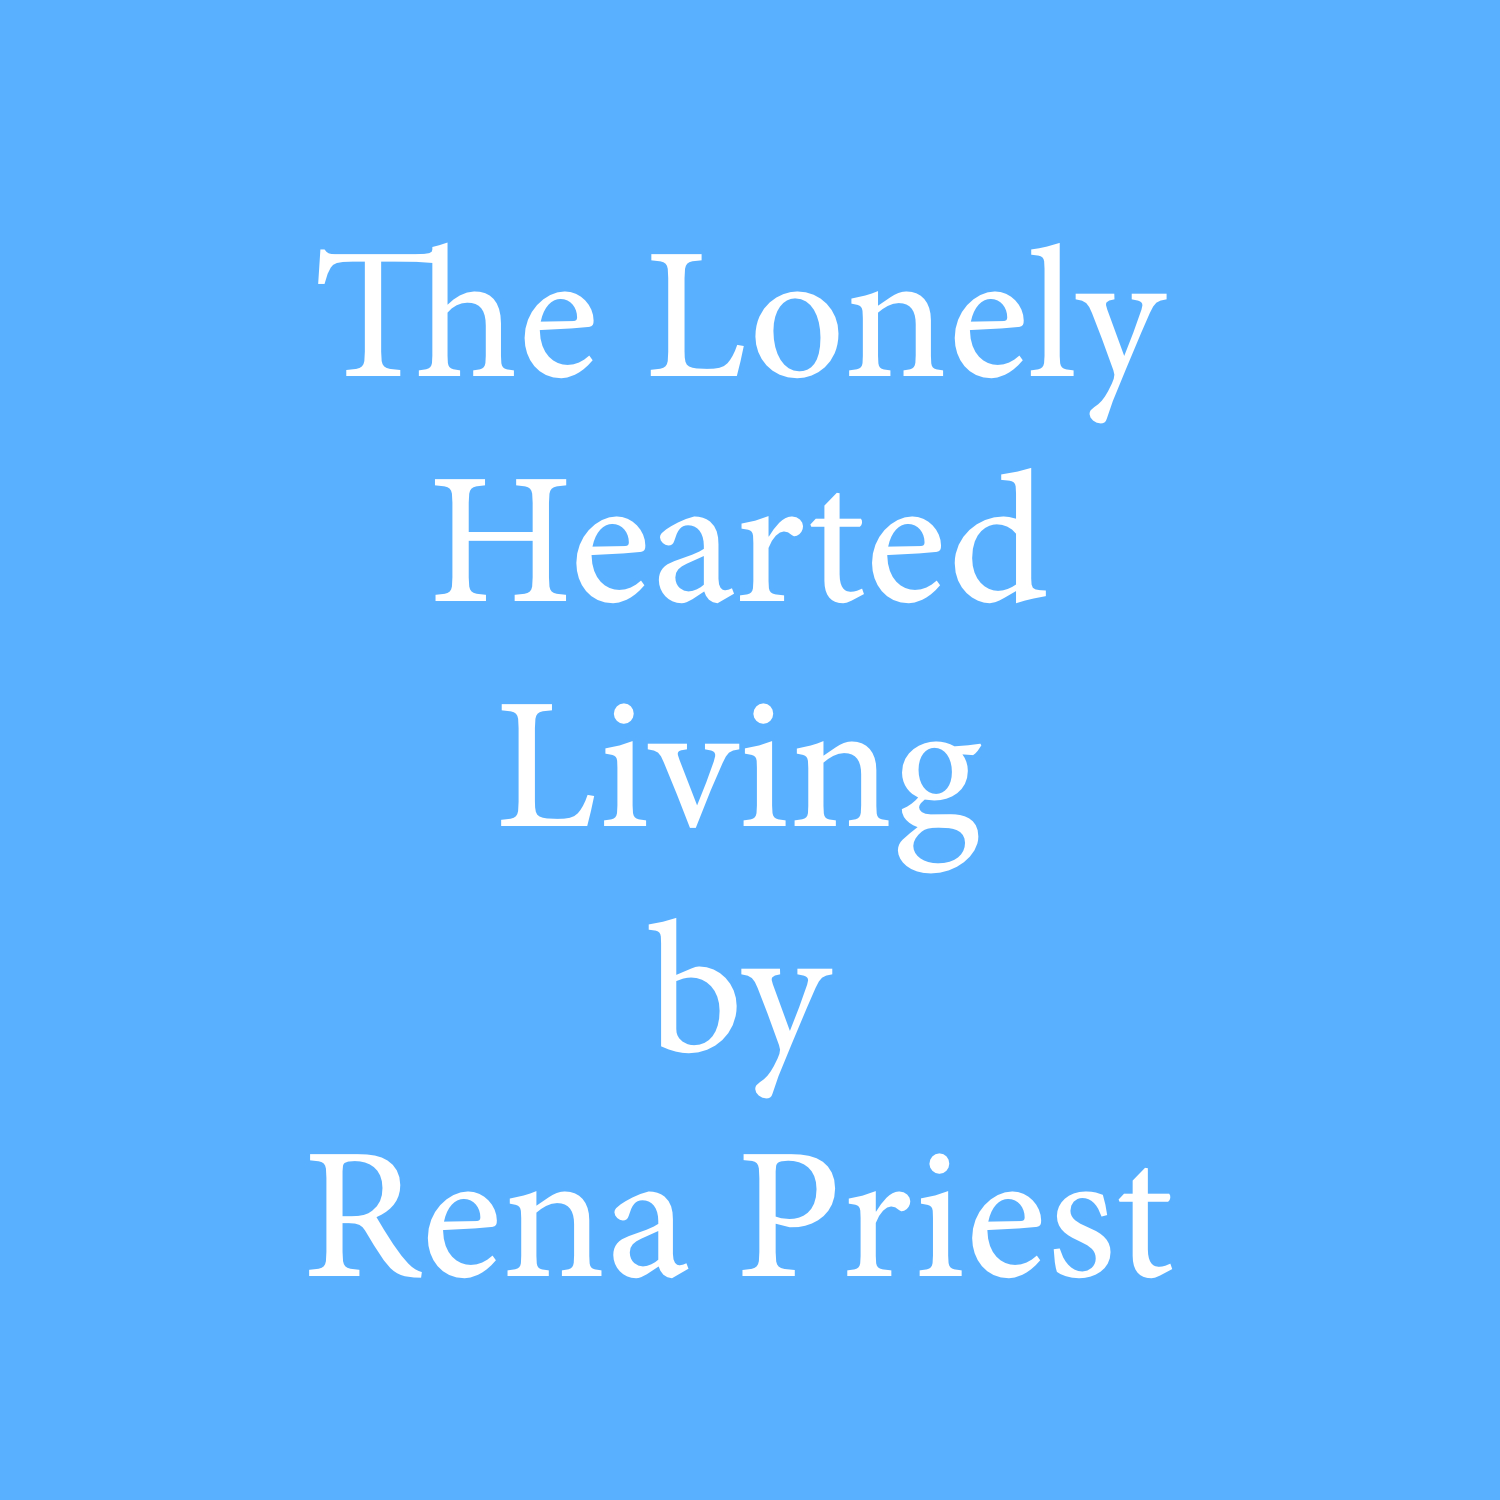 The Lonely Hearted Living Rena Priest.jpg